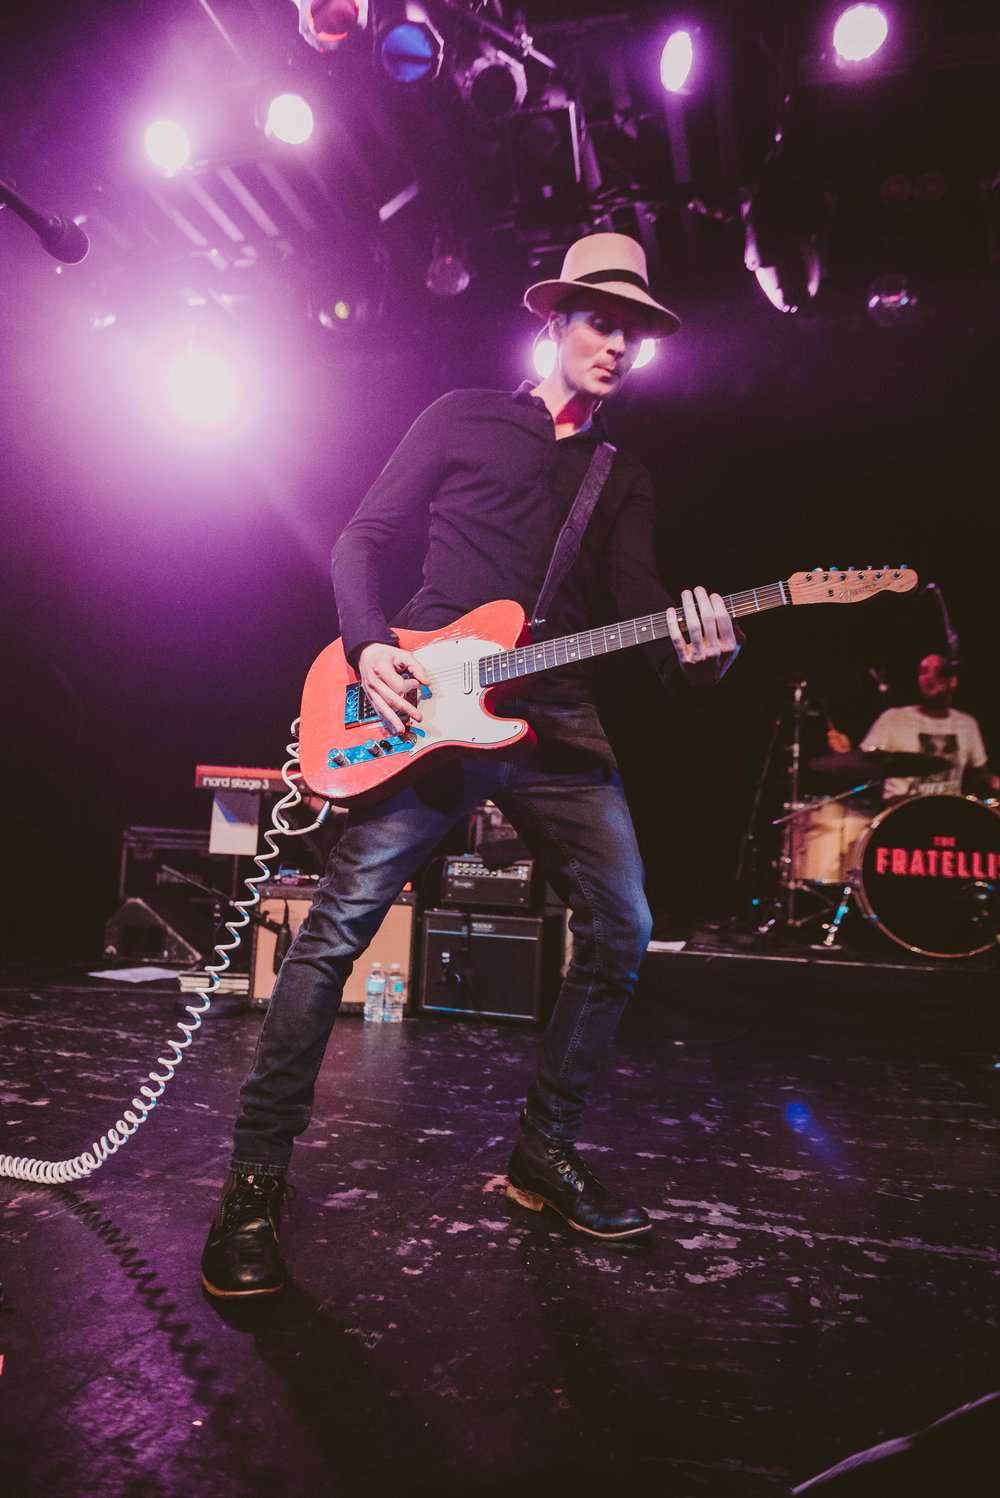 1_The_Fratellis-Commodore_Ballroom-Timothy_Nguyen-20180426 (14 of 22).jpg